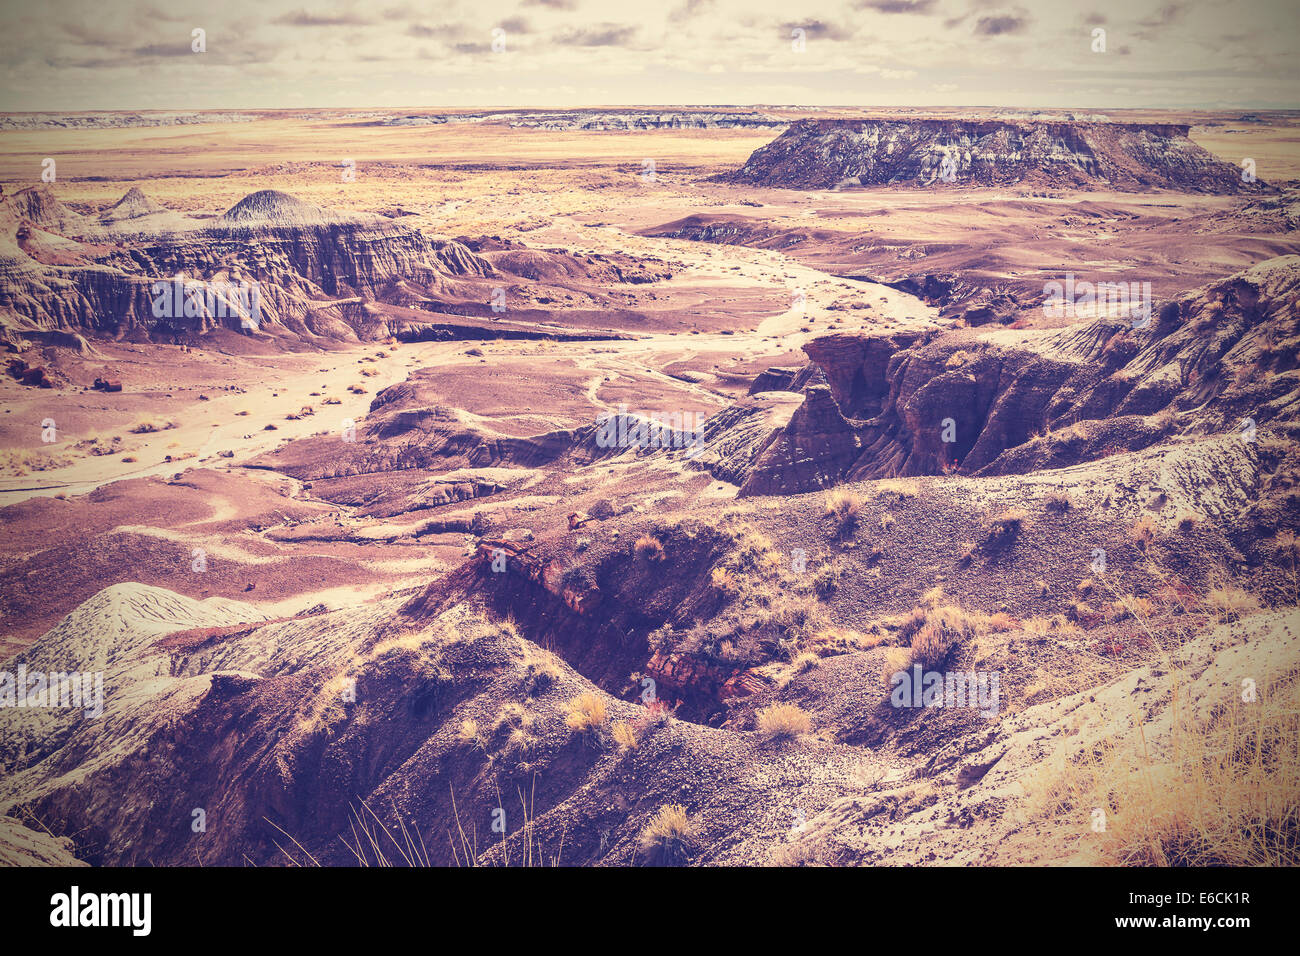 Vintage picture of Painted Desert, Petrified Forest National Park, Arizona, USA - Stock Image